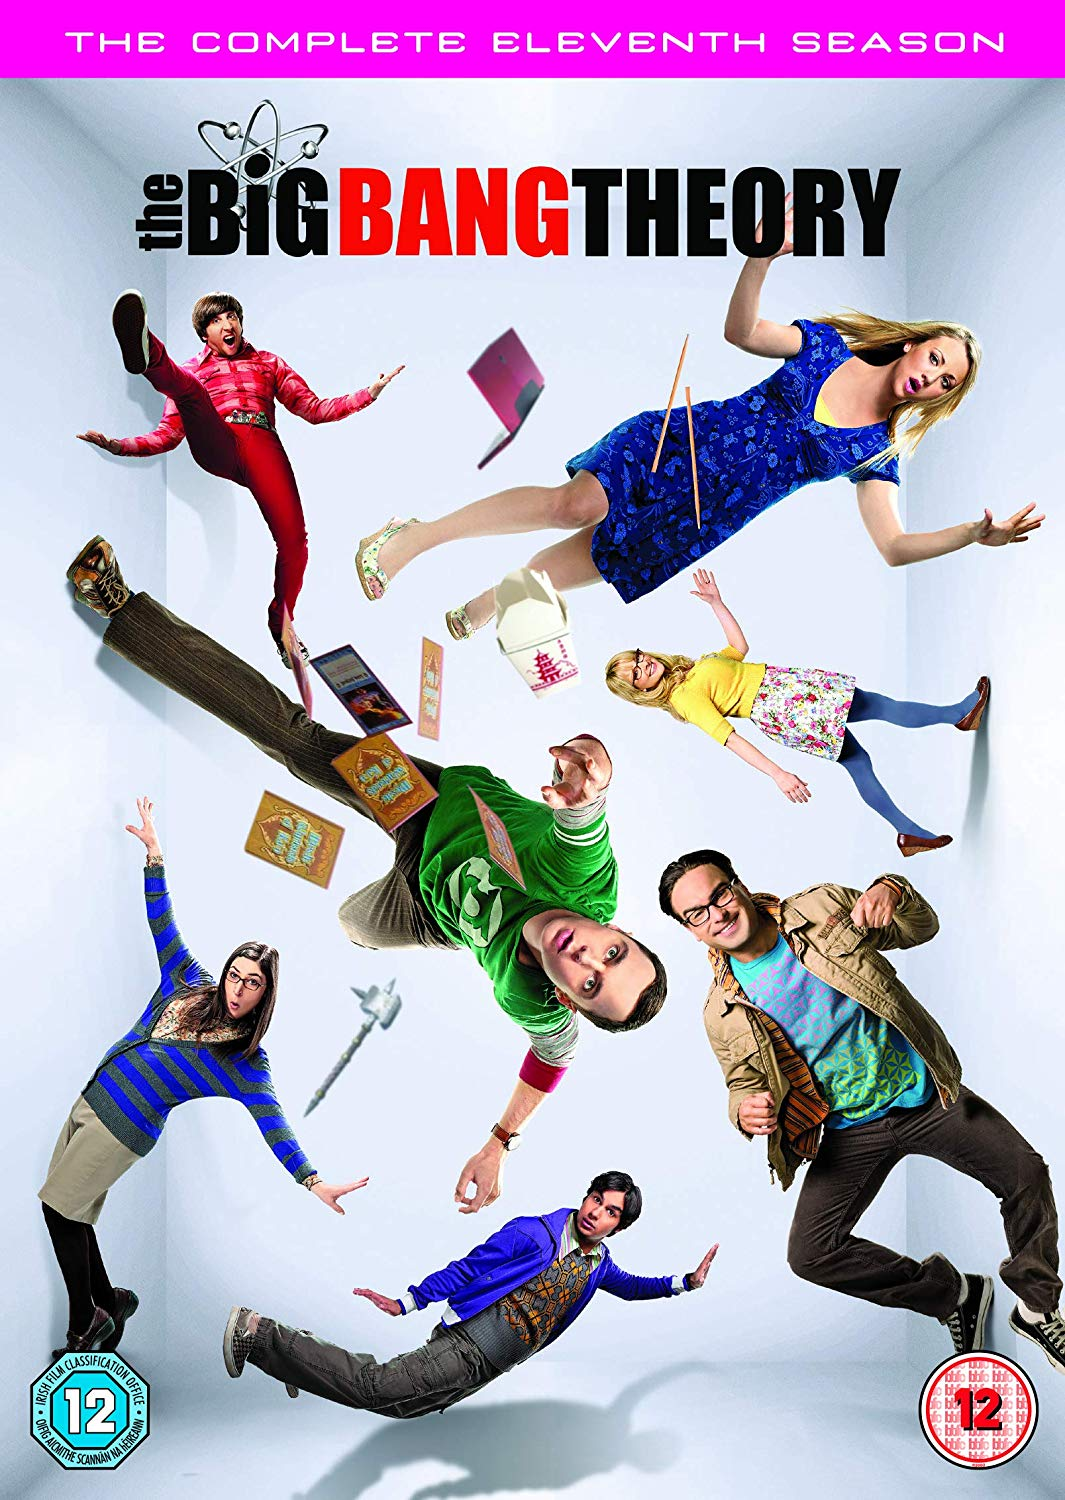 The Big Bang Theory: The Complete Eleventh Season [DVD]